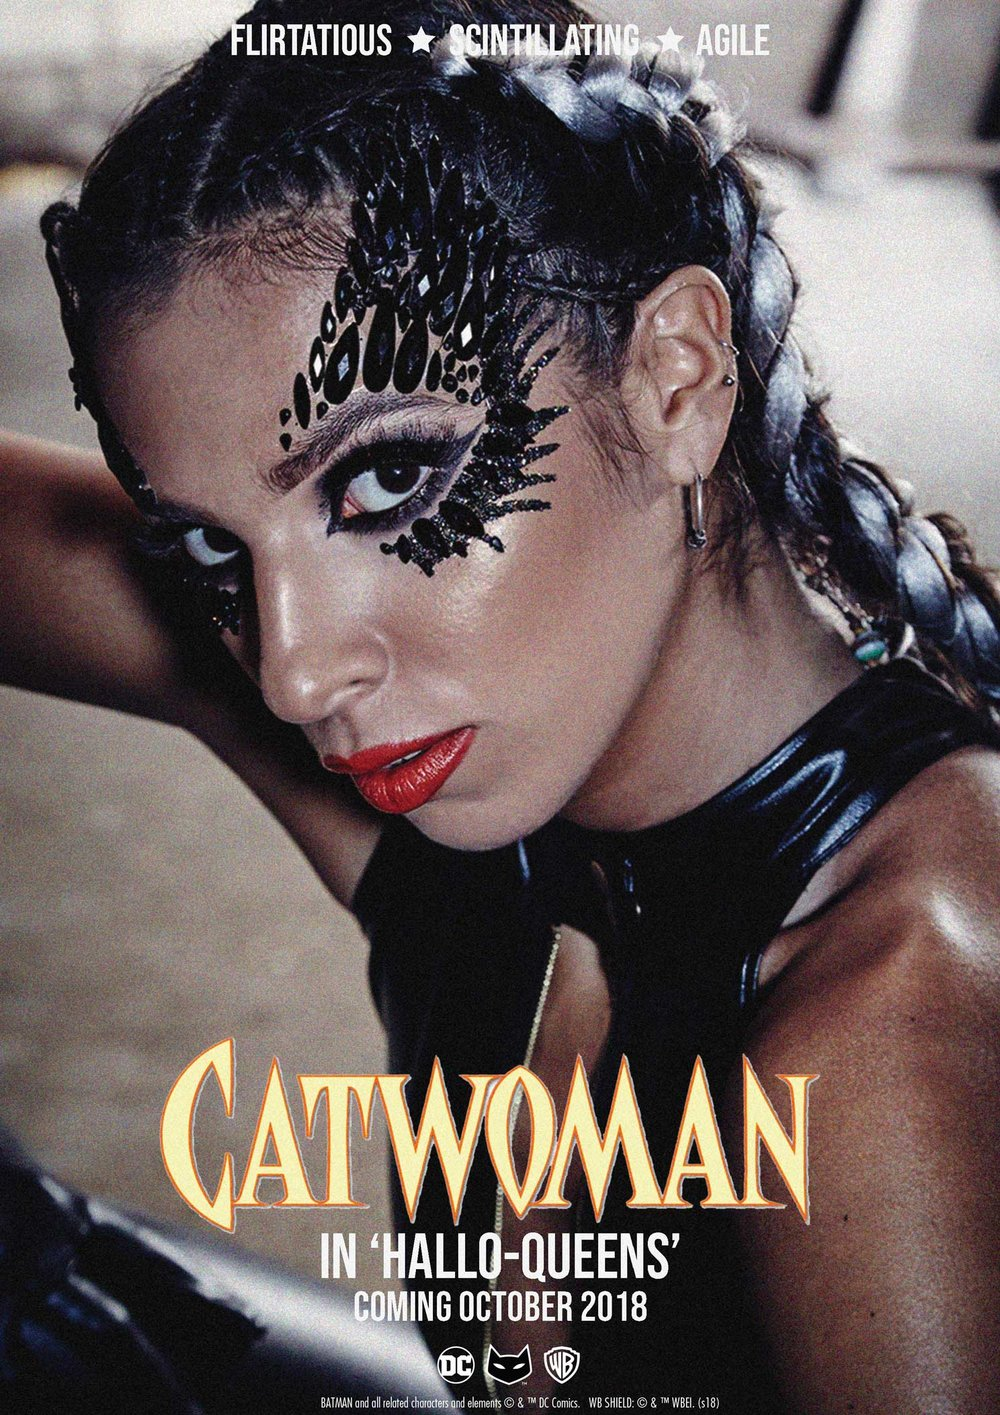 Catwoman - Agile and confident, Catwoman has the purrr-fect balance of seductive feline charm! Lurking in the shadows and stealing hearts for a living, she's the ultimate Hallo-Queen!